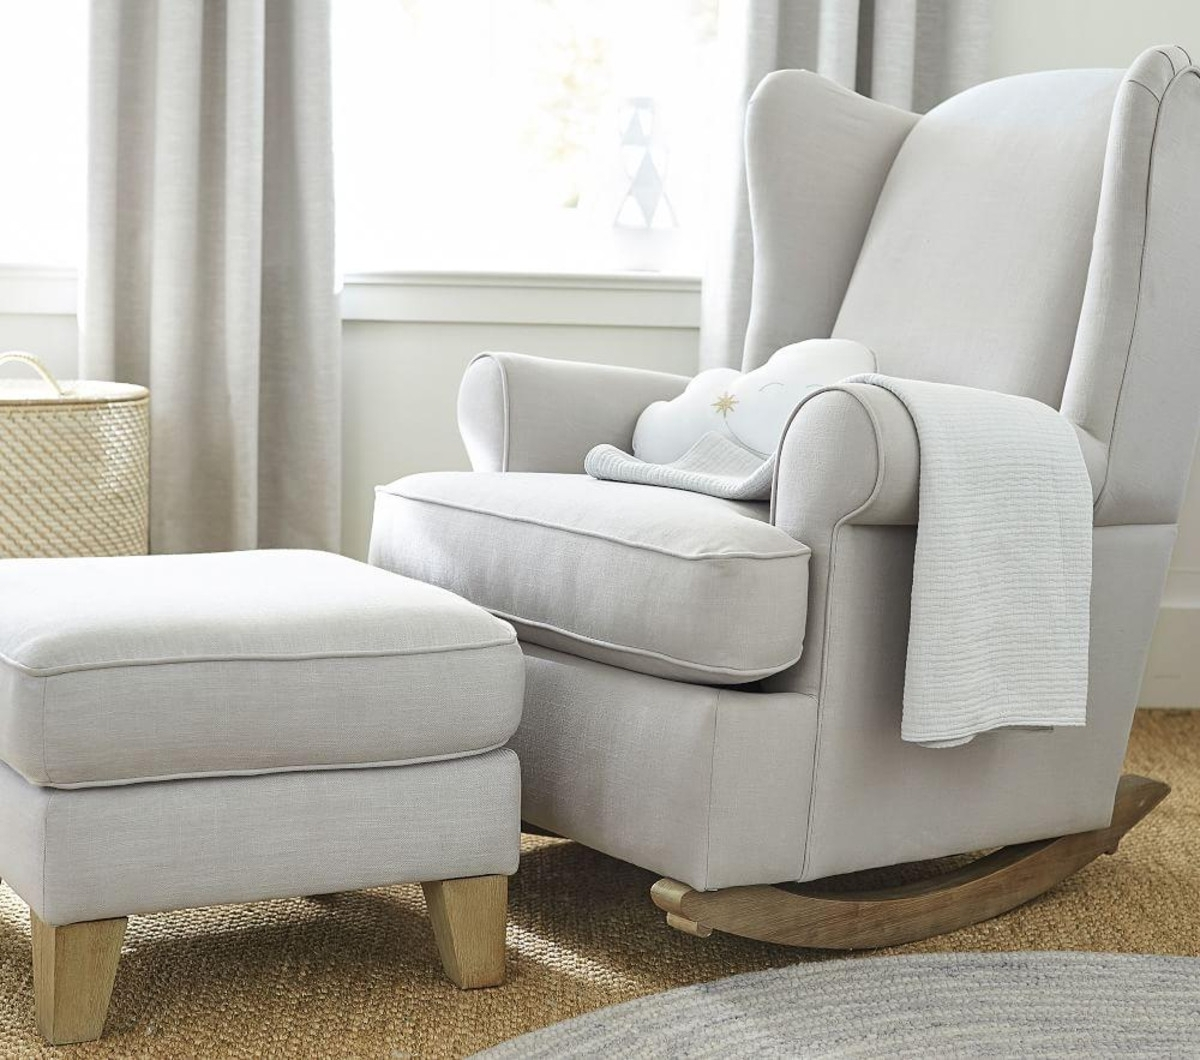 Best Affordable Rocking Chair For Nursery In Stupendous Picture Within Rocking Chairs For Nursery (View 4 of 15)